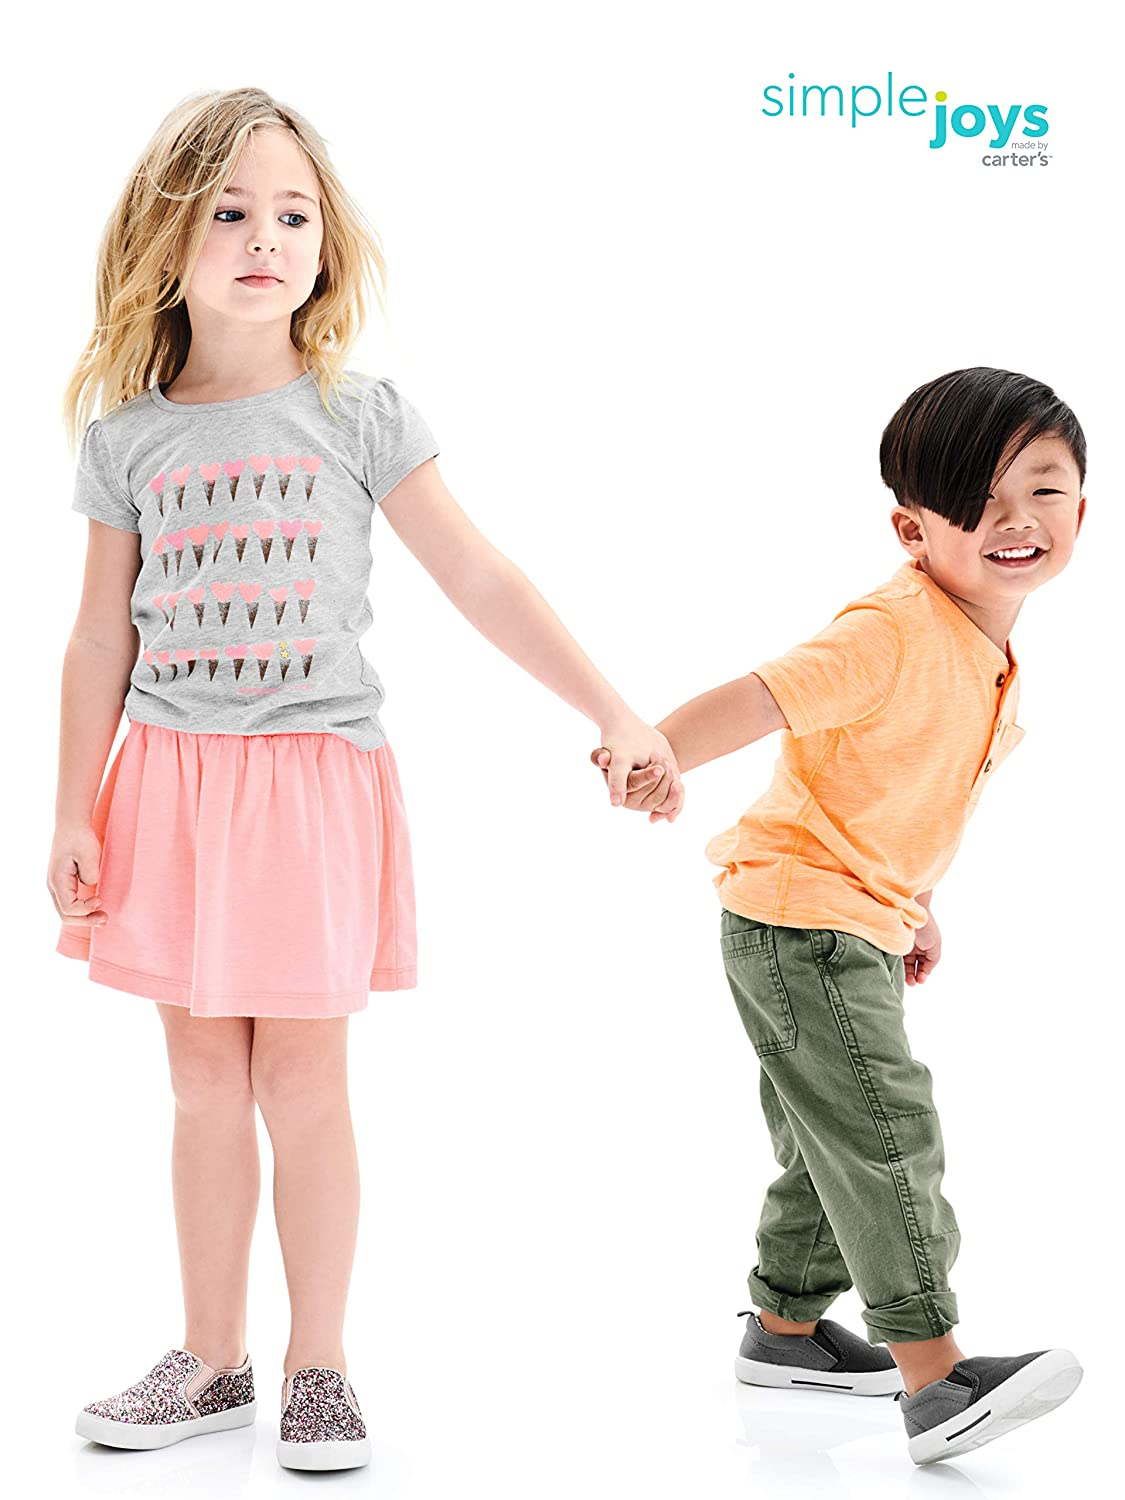 Simple Joys by Carters Toddler Girls 3-Pack Short-Sleeve Graphic Tees